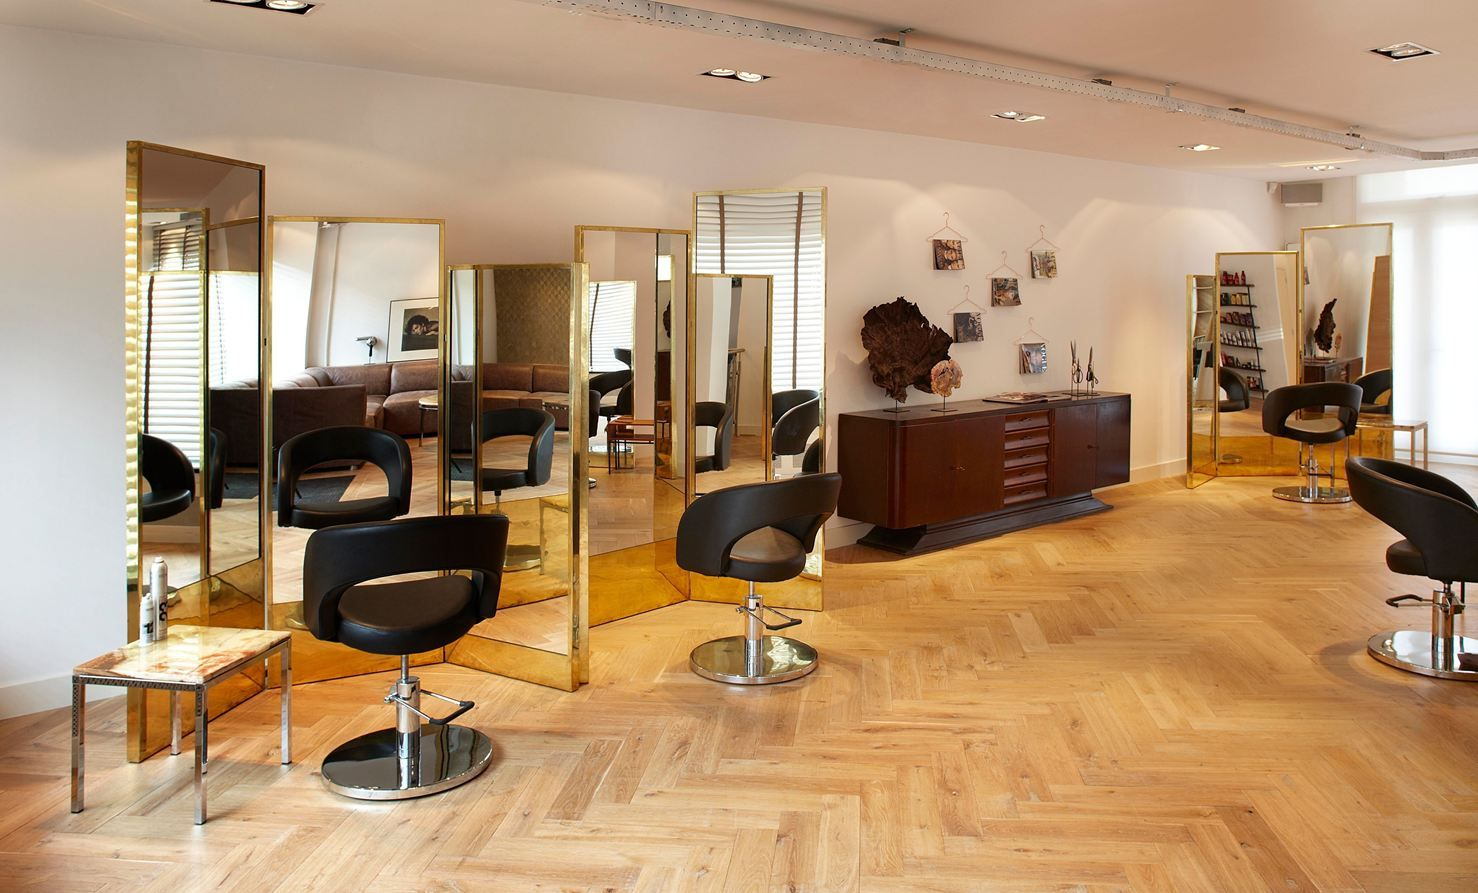 The Building Hair Salon Picture Gallery Salon Pictures Hair